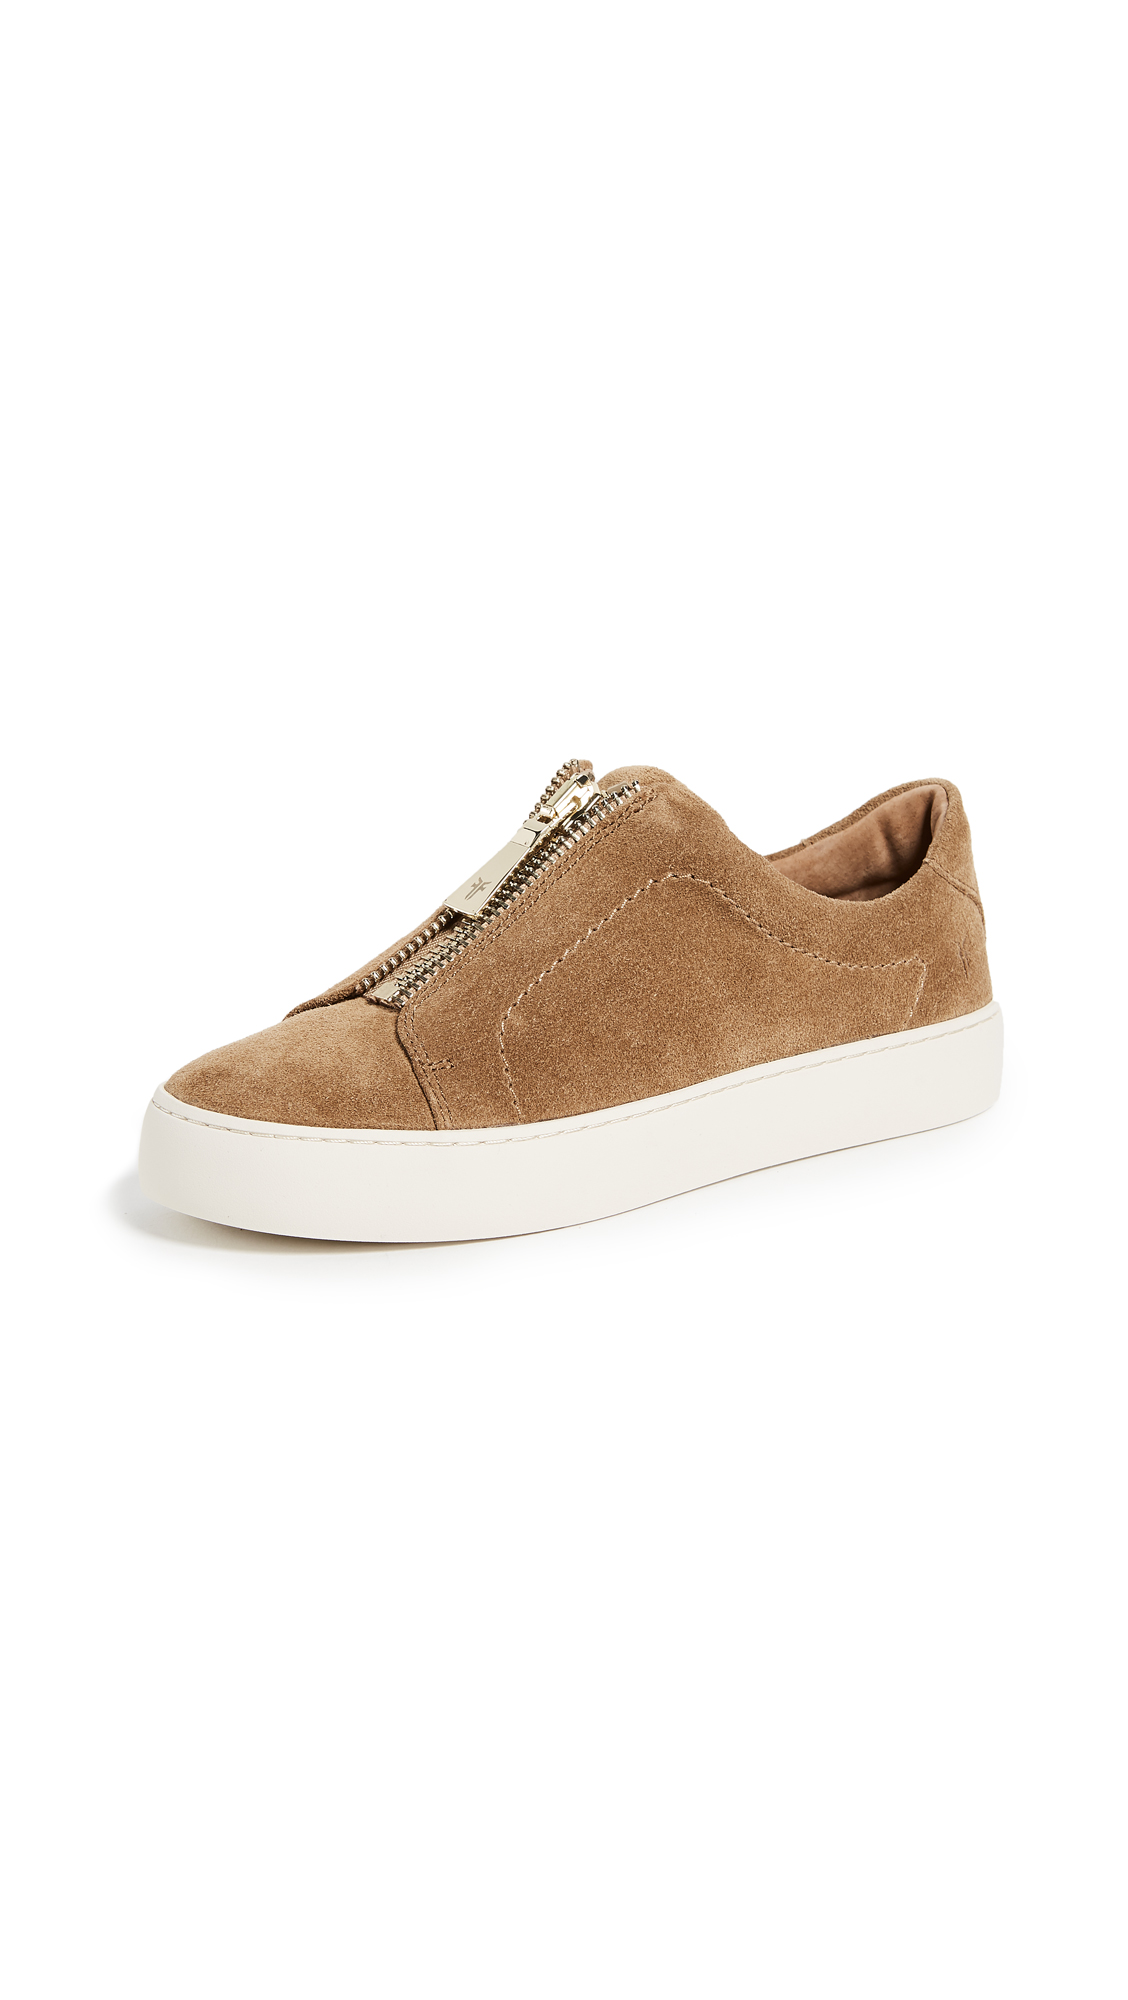 Frye Lenz Zip Low Top Sneakers - Tan